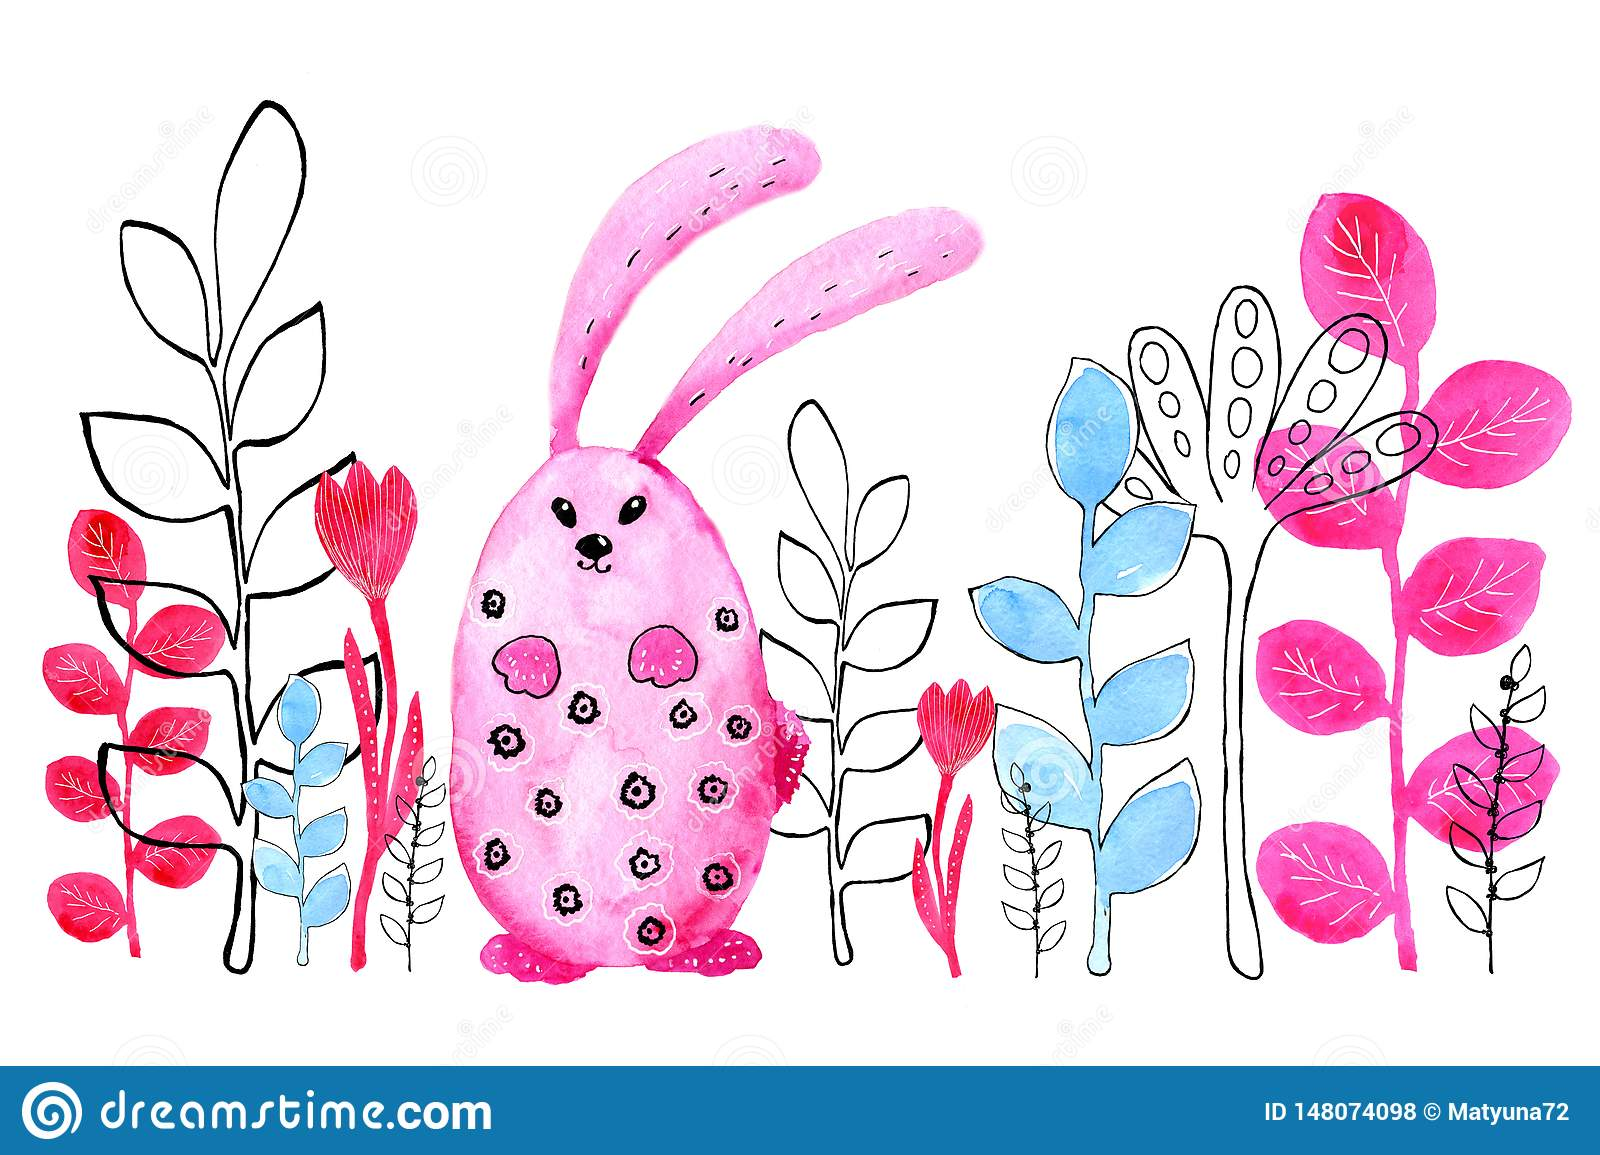 Pink bunny, rabbit. Border. Drawing in watercolor and graphic style for the design of prints, backgrounds, cards, wedding